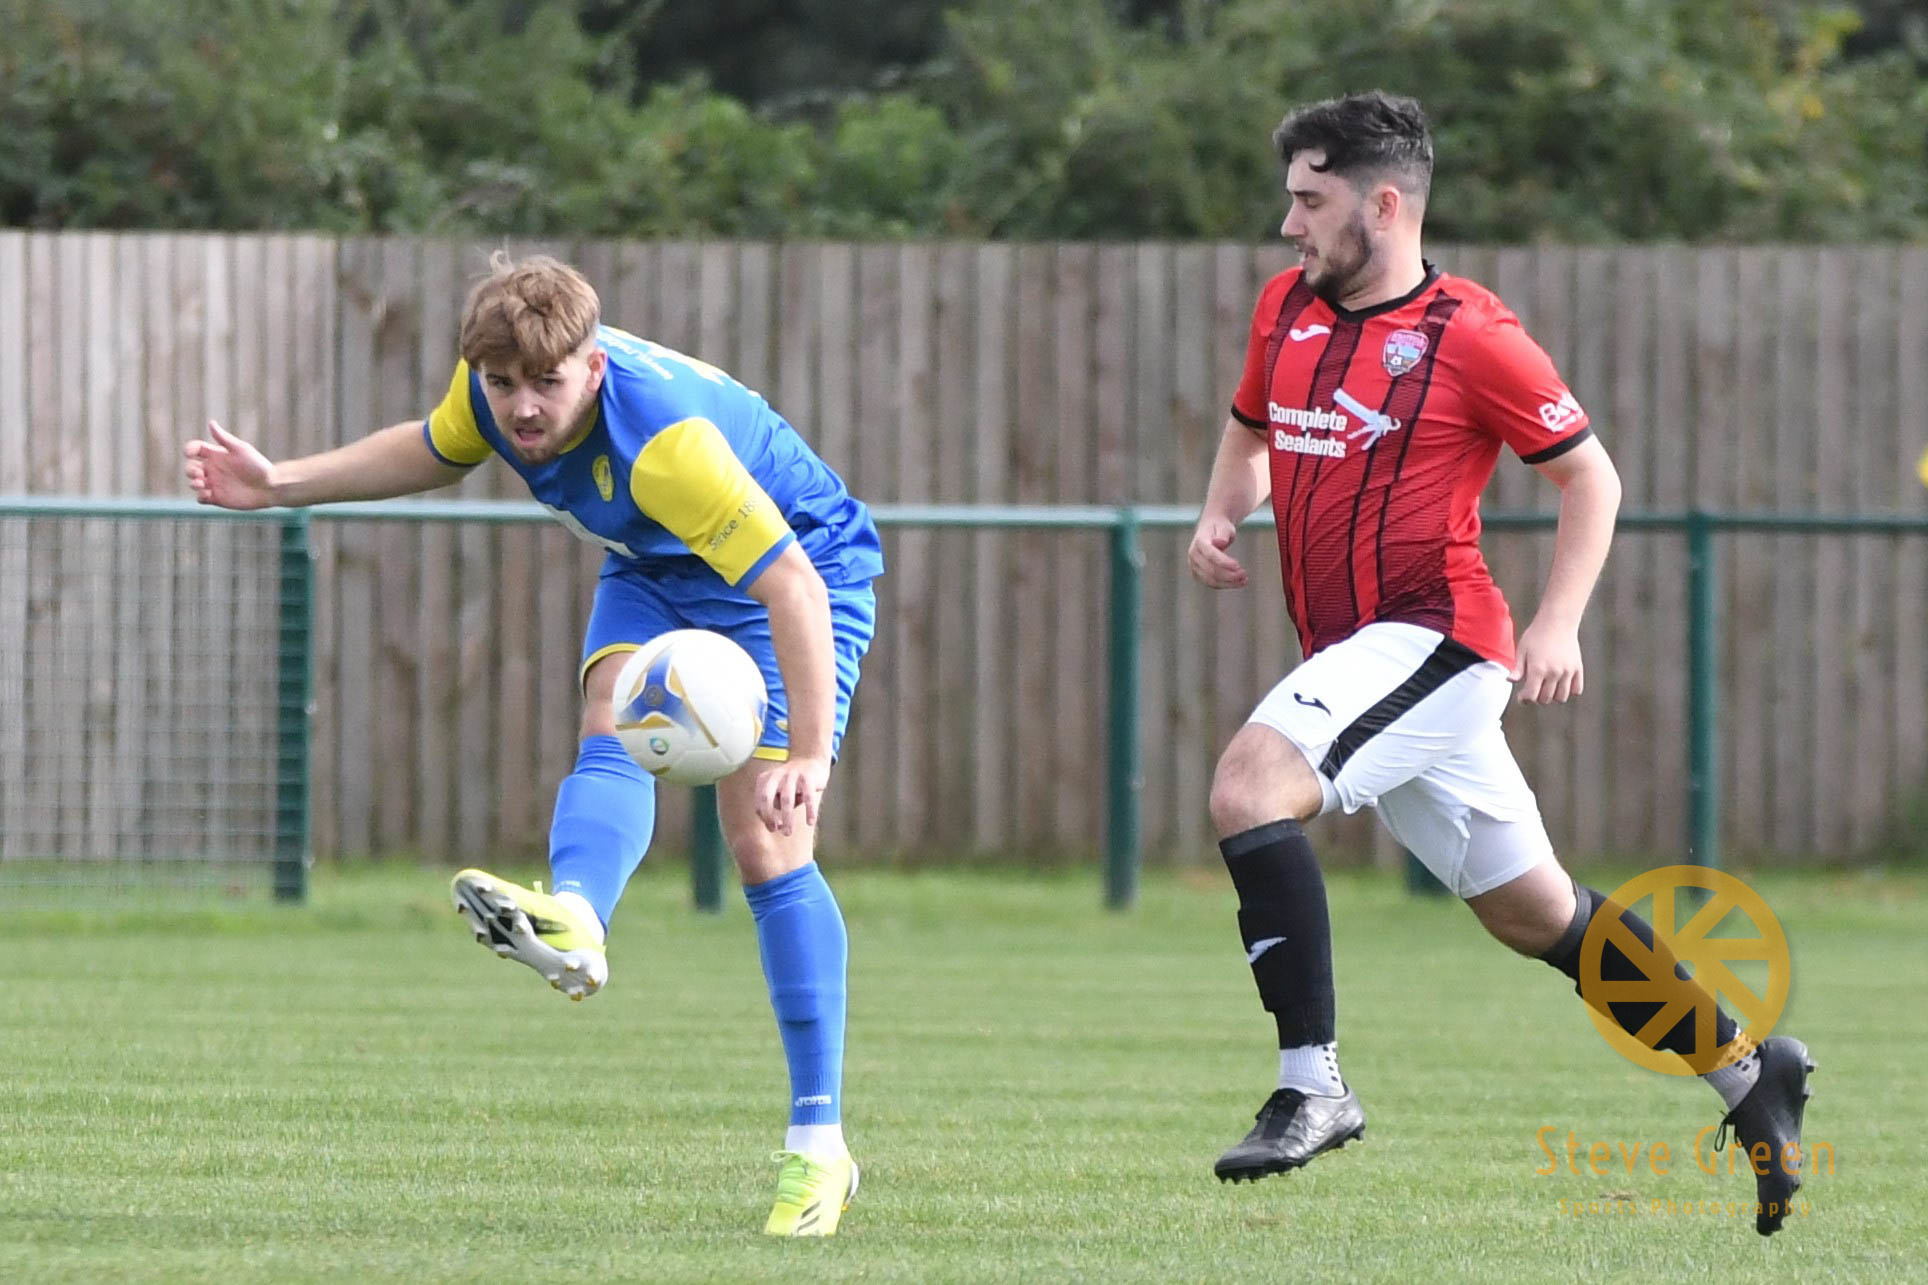 Photos from Royal Wootton Bassett Town's 1-0 FA Vase win over Knaphill (Credit: Steve Green)